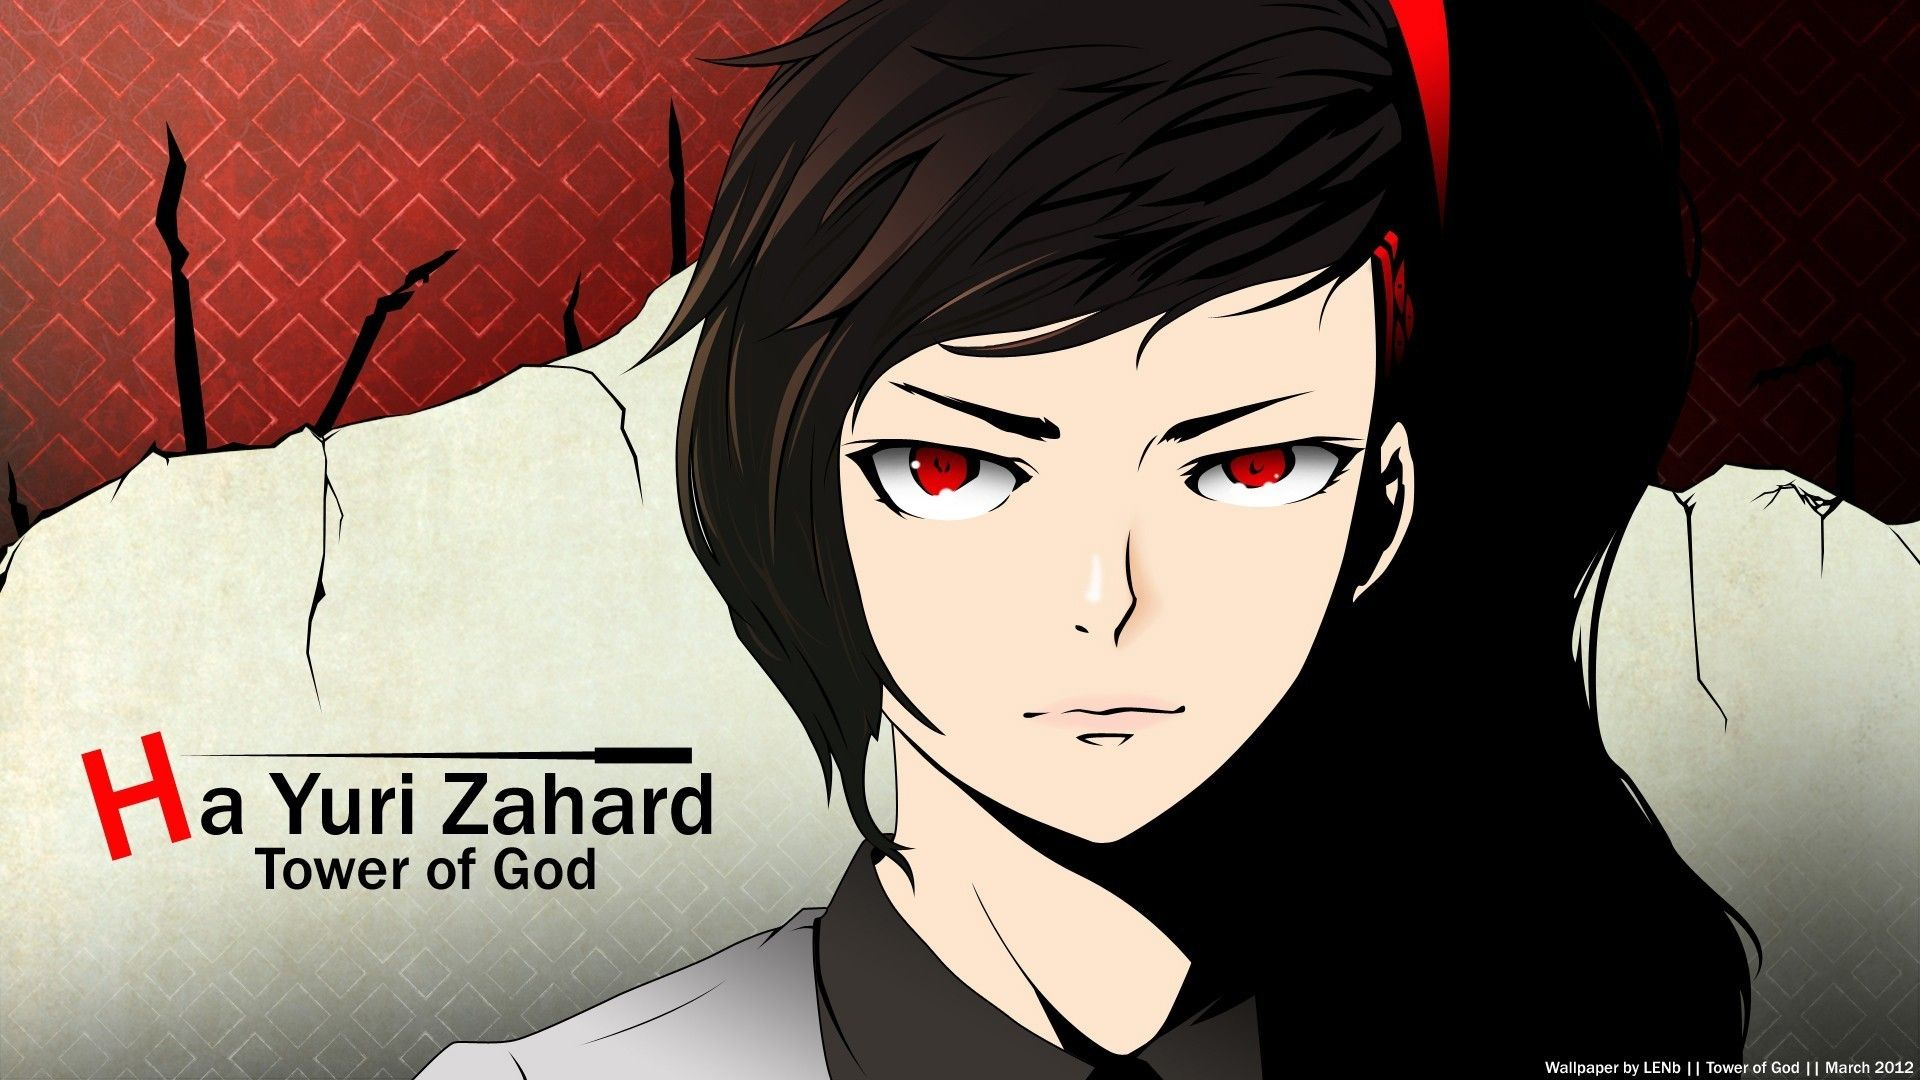 1920x1080 Tower Of God Yuri Zahard Wallpapers Hd Desktop And Mobile Backgrounds Tower Anime Webtoon Comics